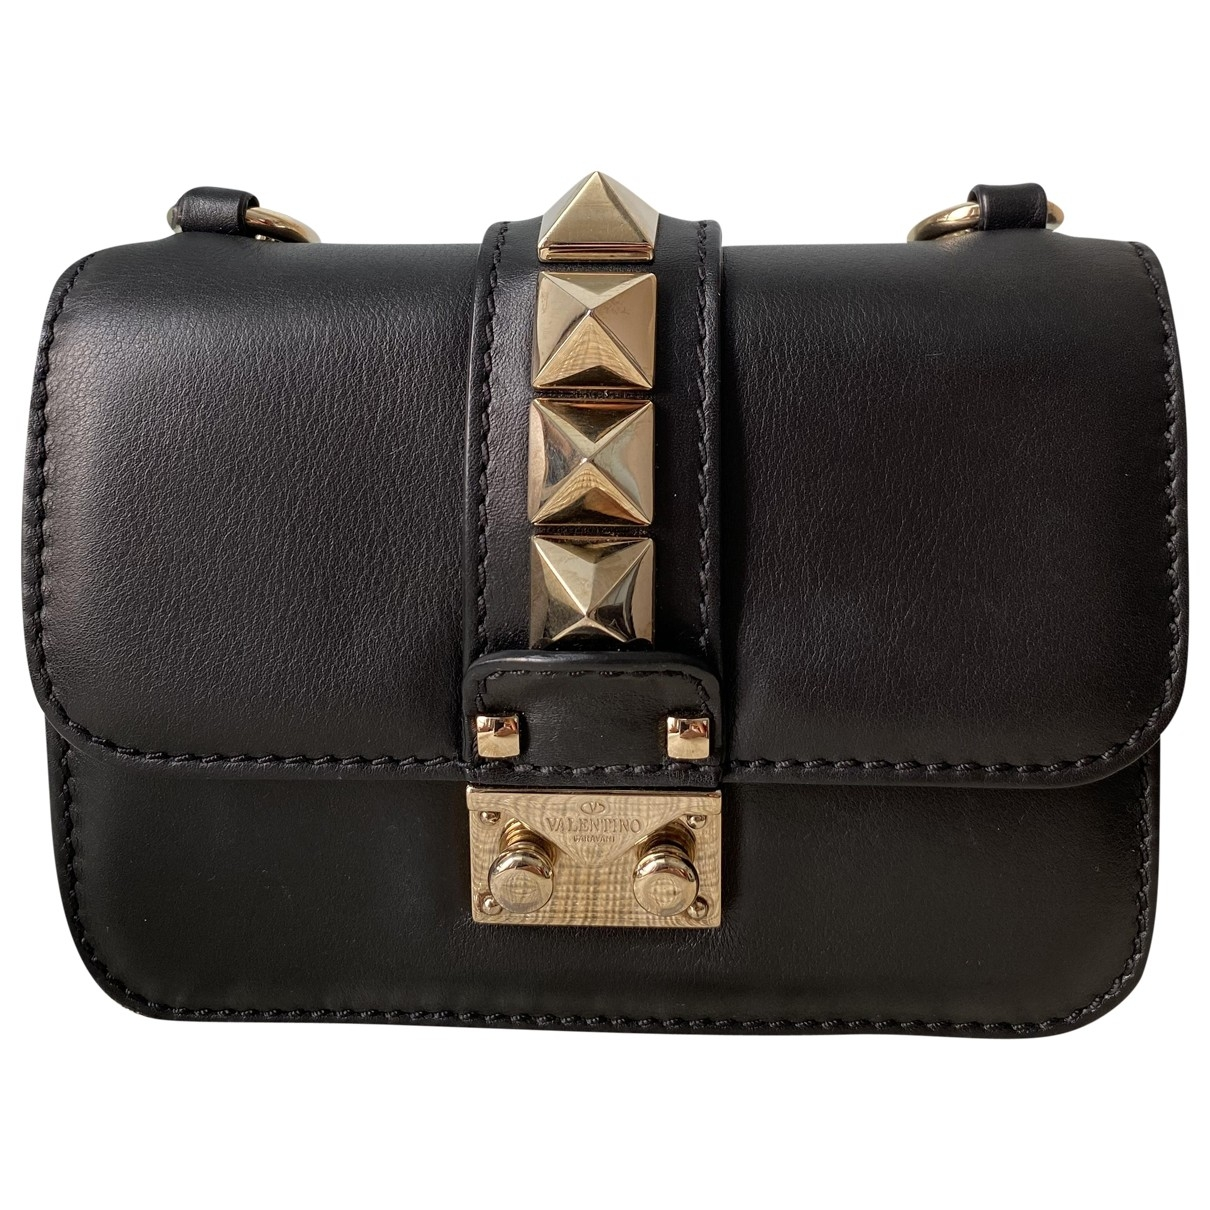 Valentino Garavani Glam Lock Black Leather handbag for Women \N